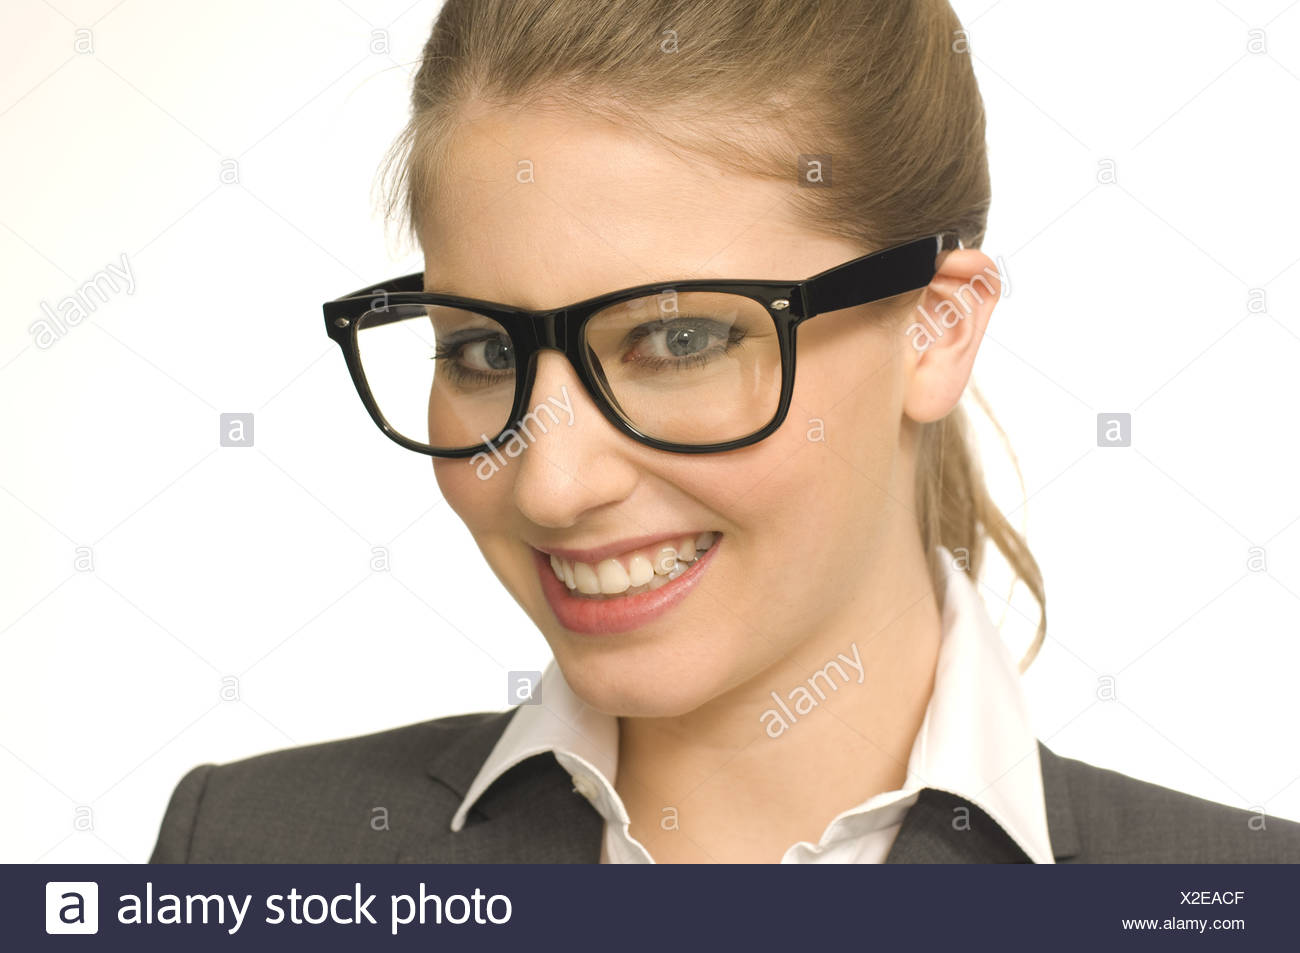 woman with glasses - Stock Image